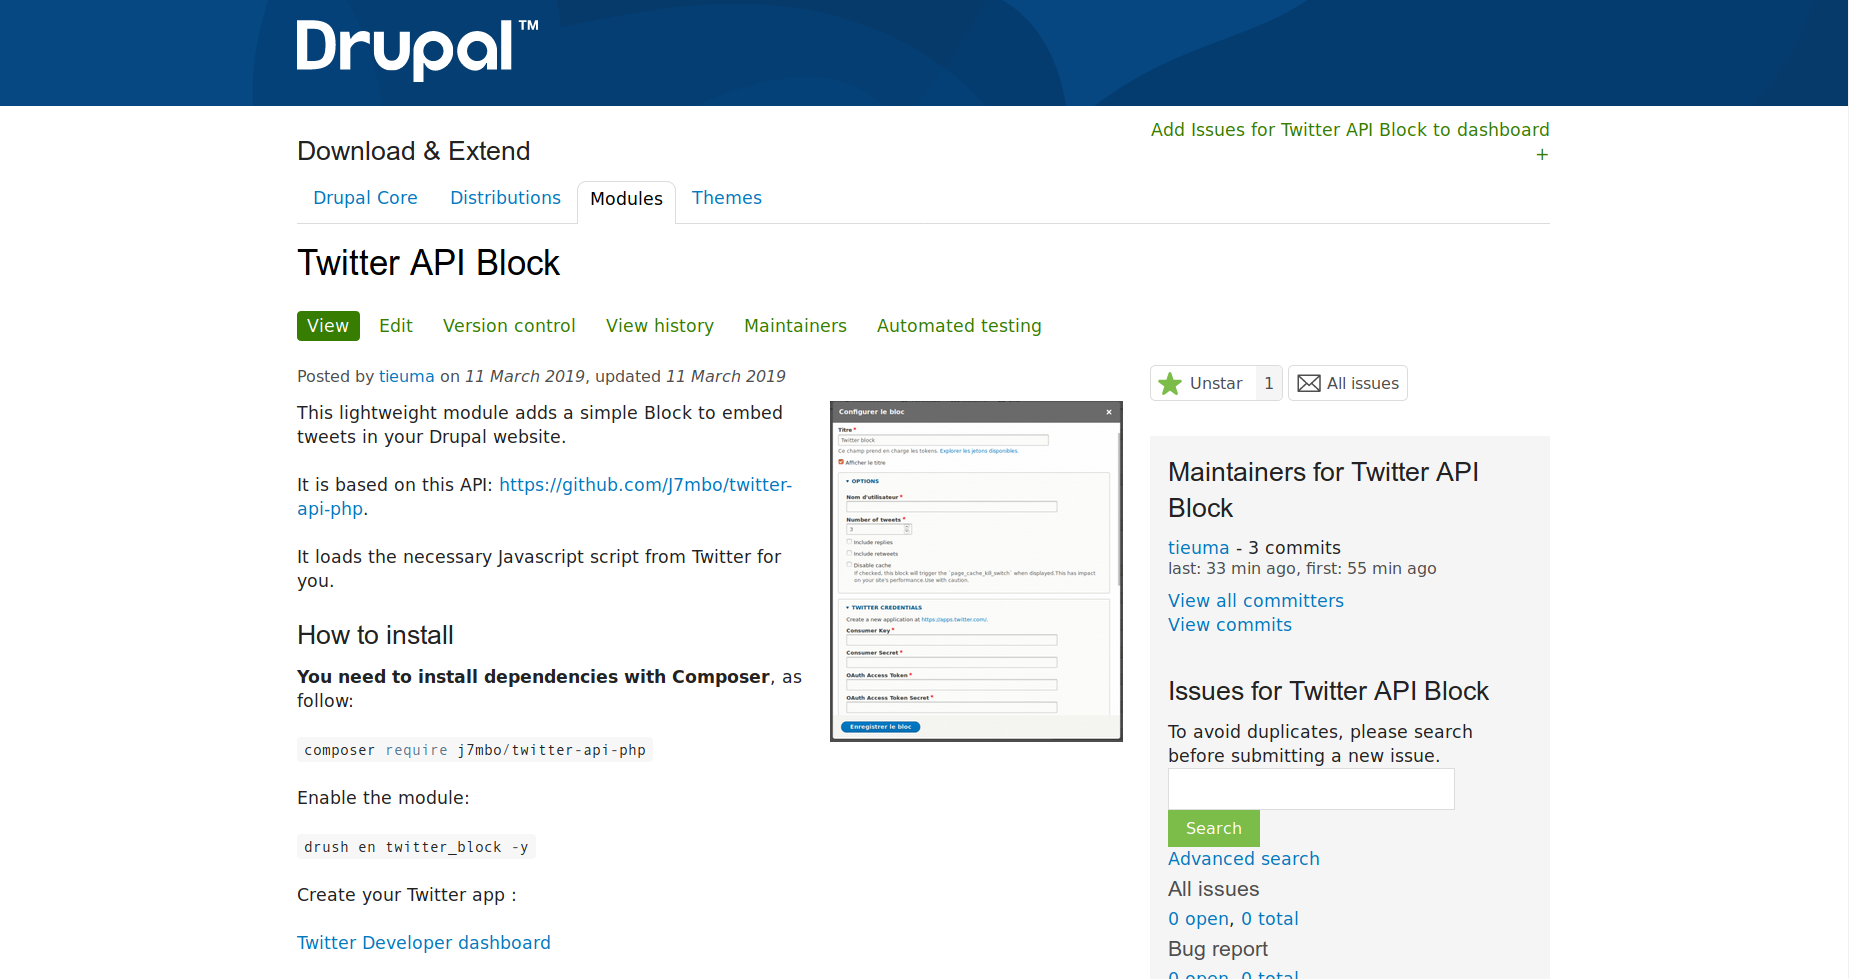 Twitter API Block module page on Drupal.org